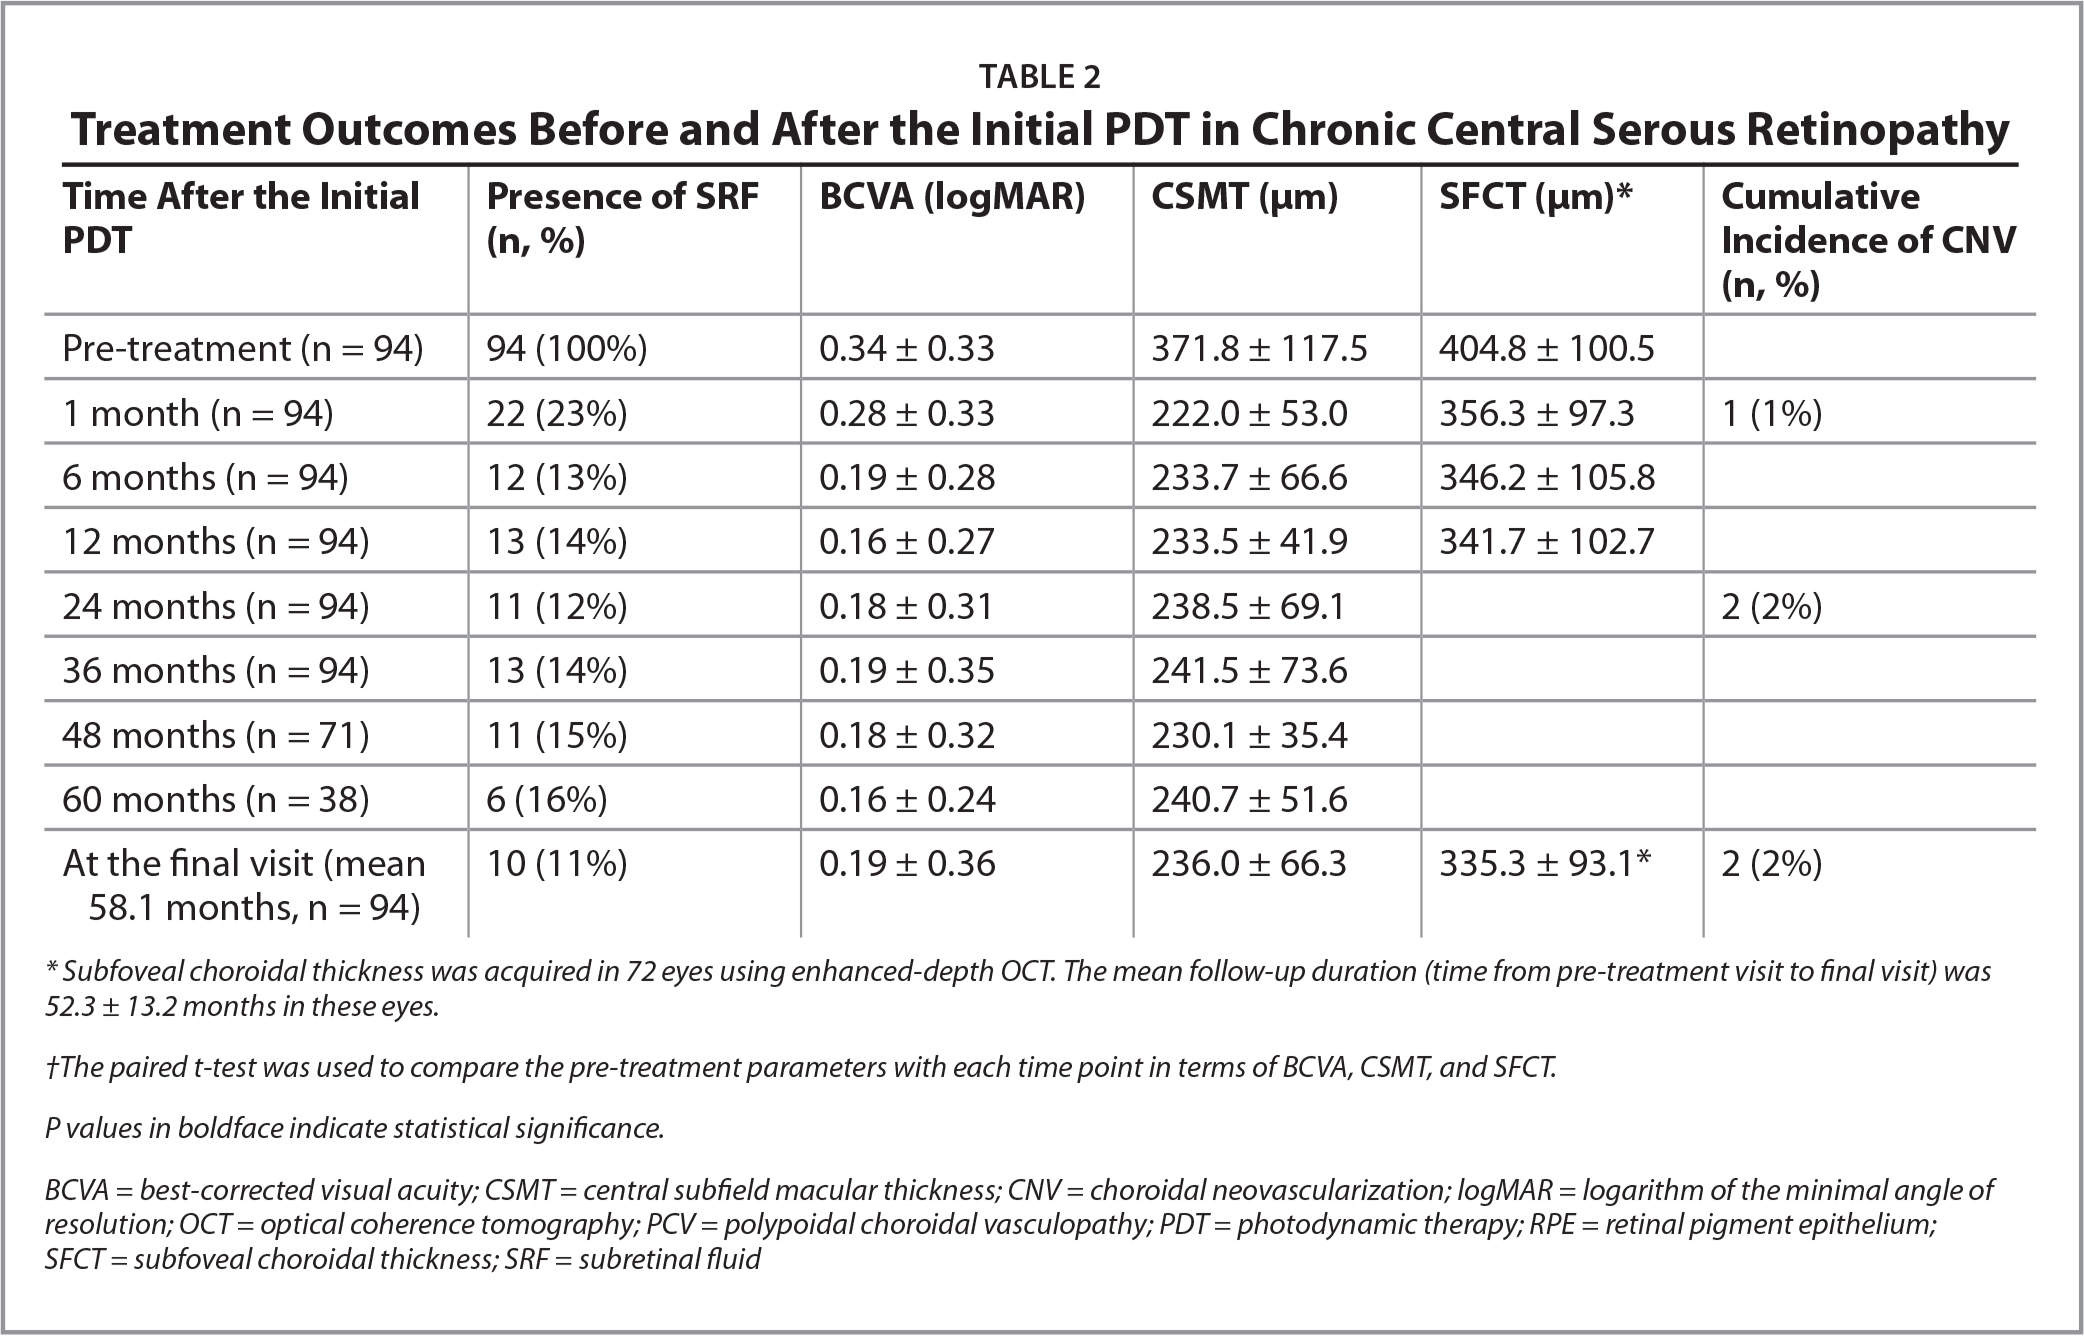 Treatment Outcomes Before and After the Initial PDT in Chronic Central Serous Retinopathy